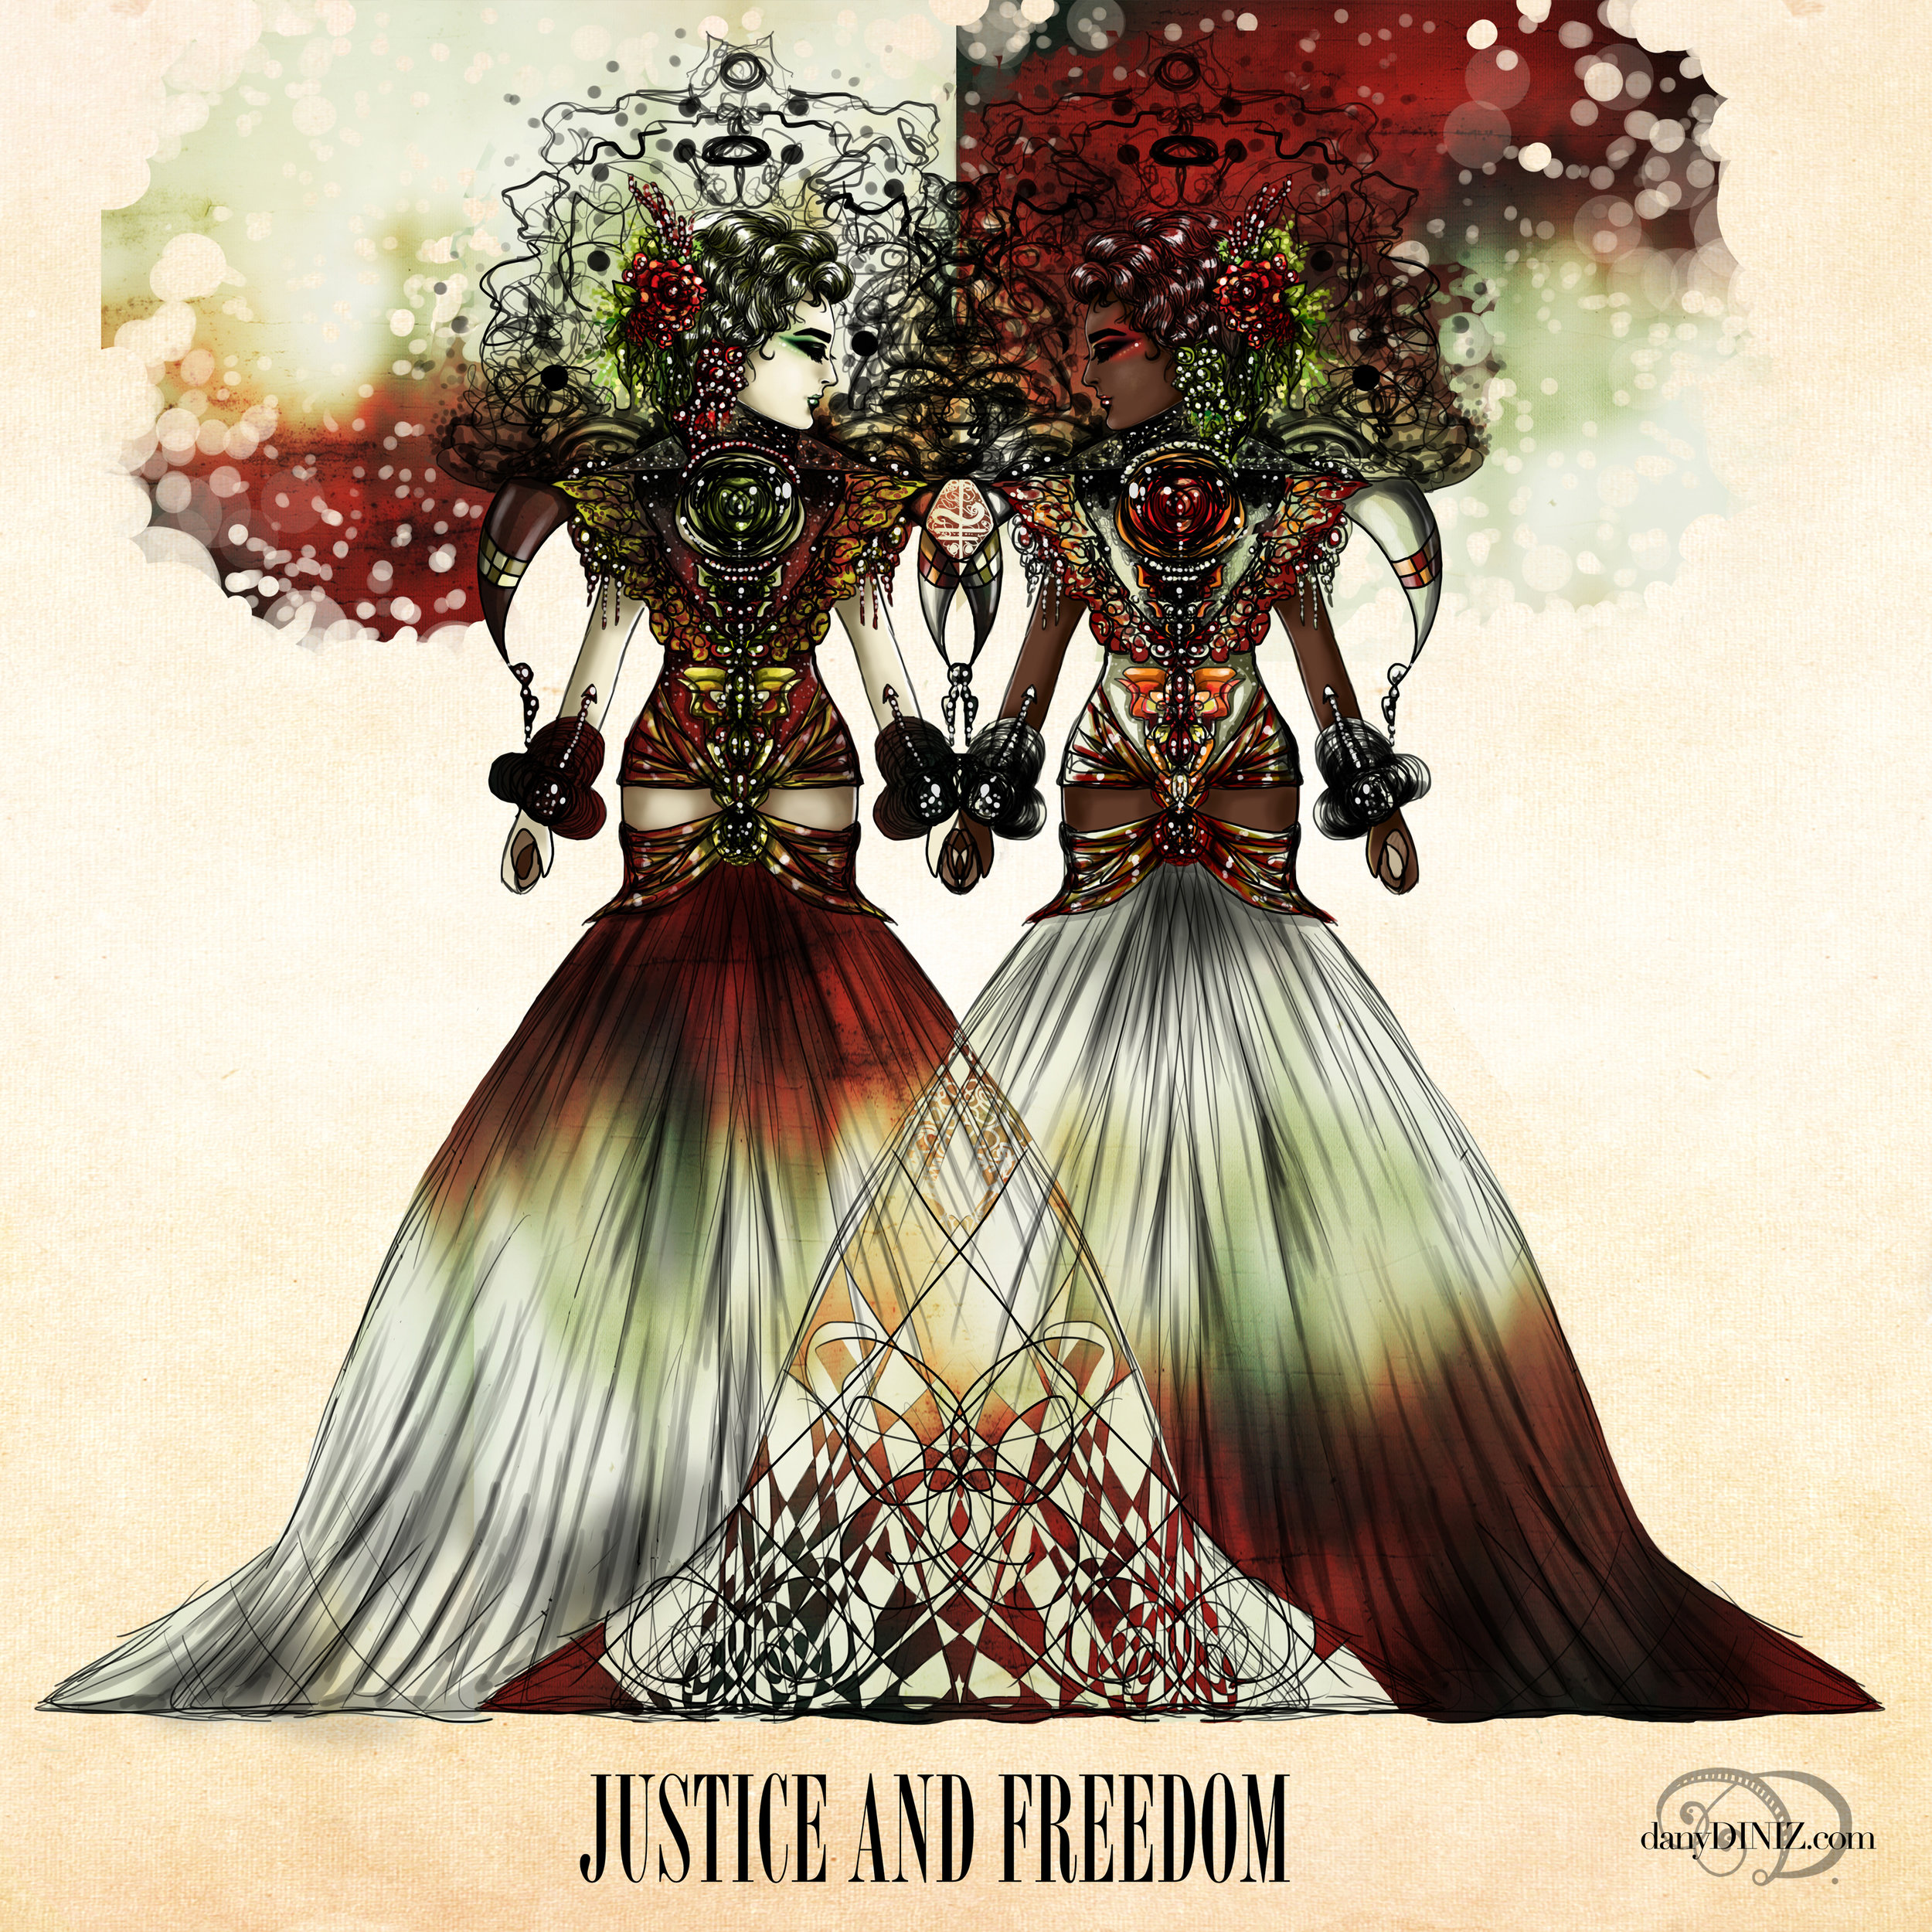 JUSTICE AND FREEDOM